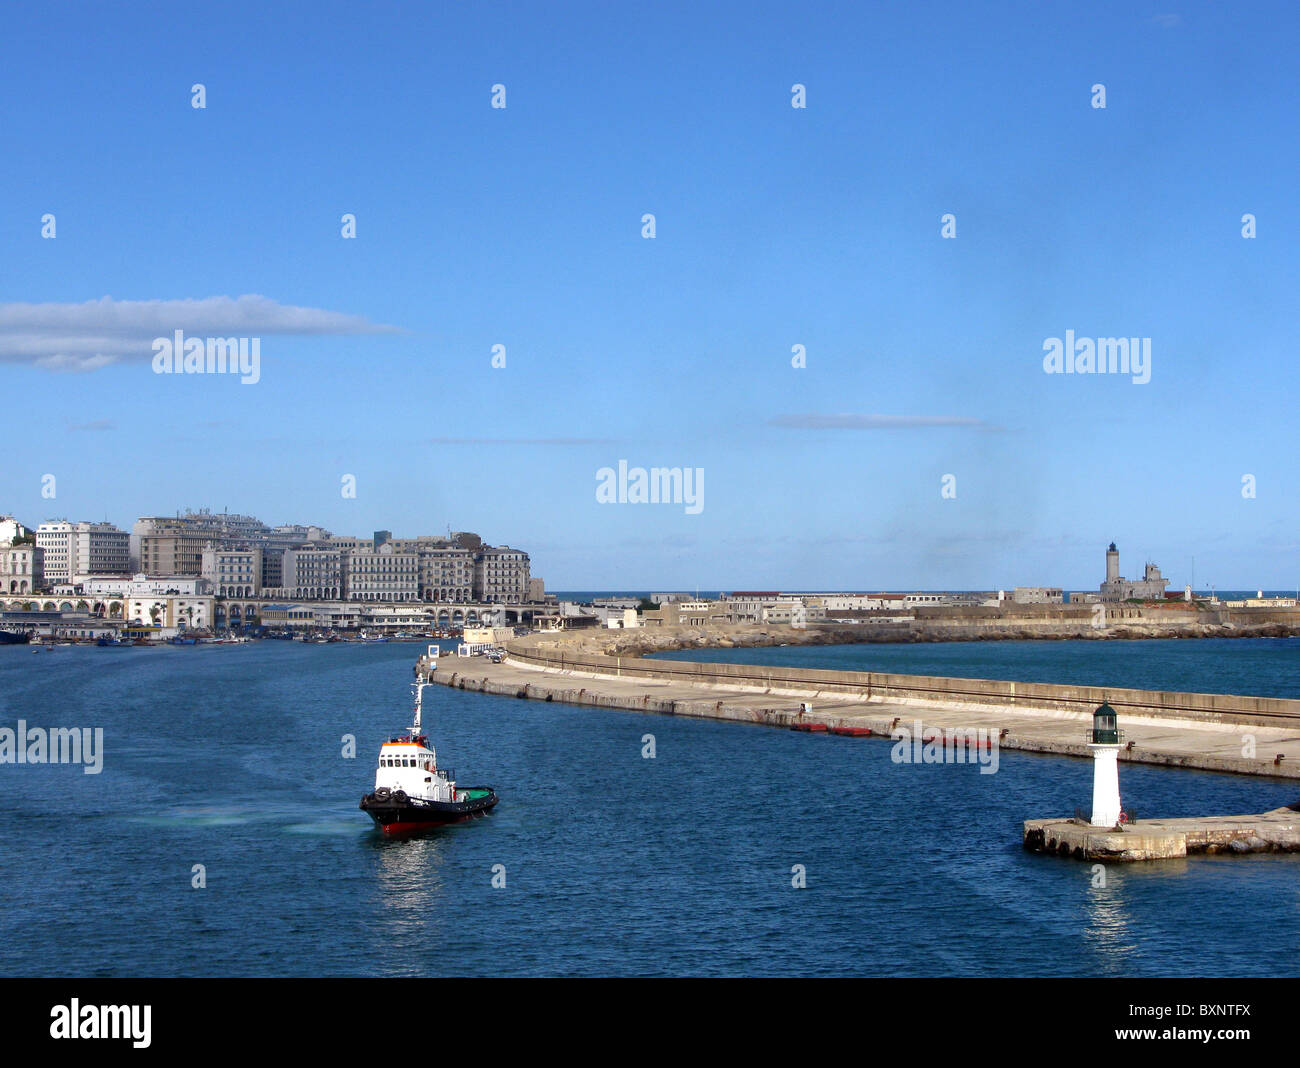 Algiers, City of Algiers in Algeria, North Africa - Stock Image